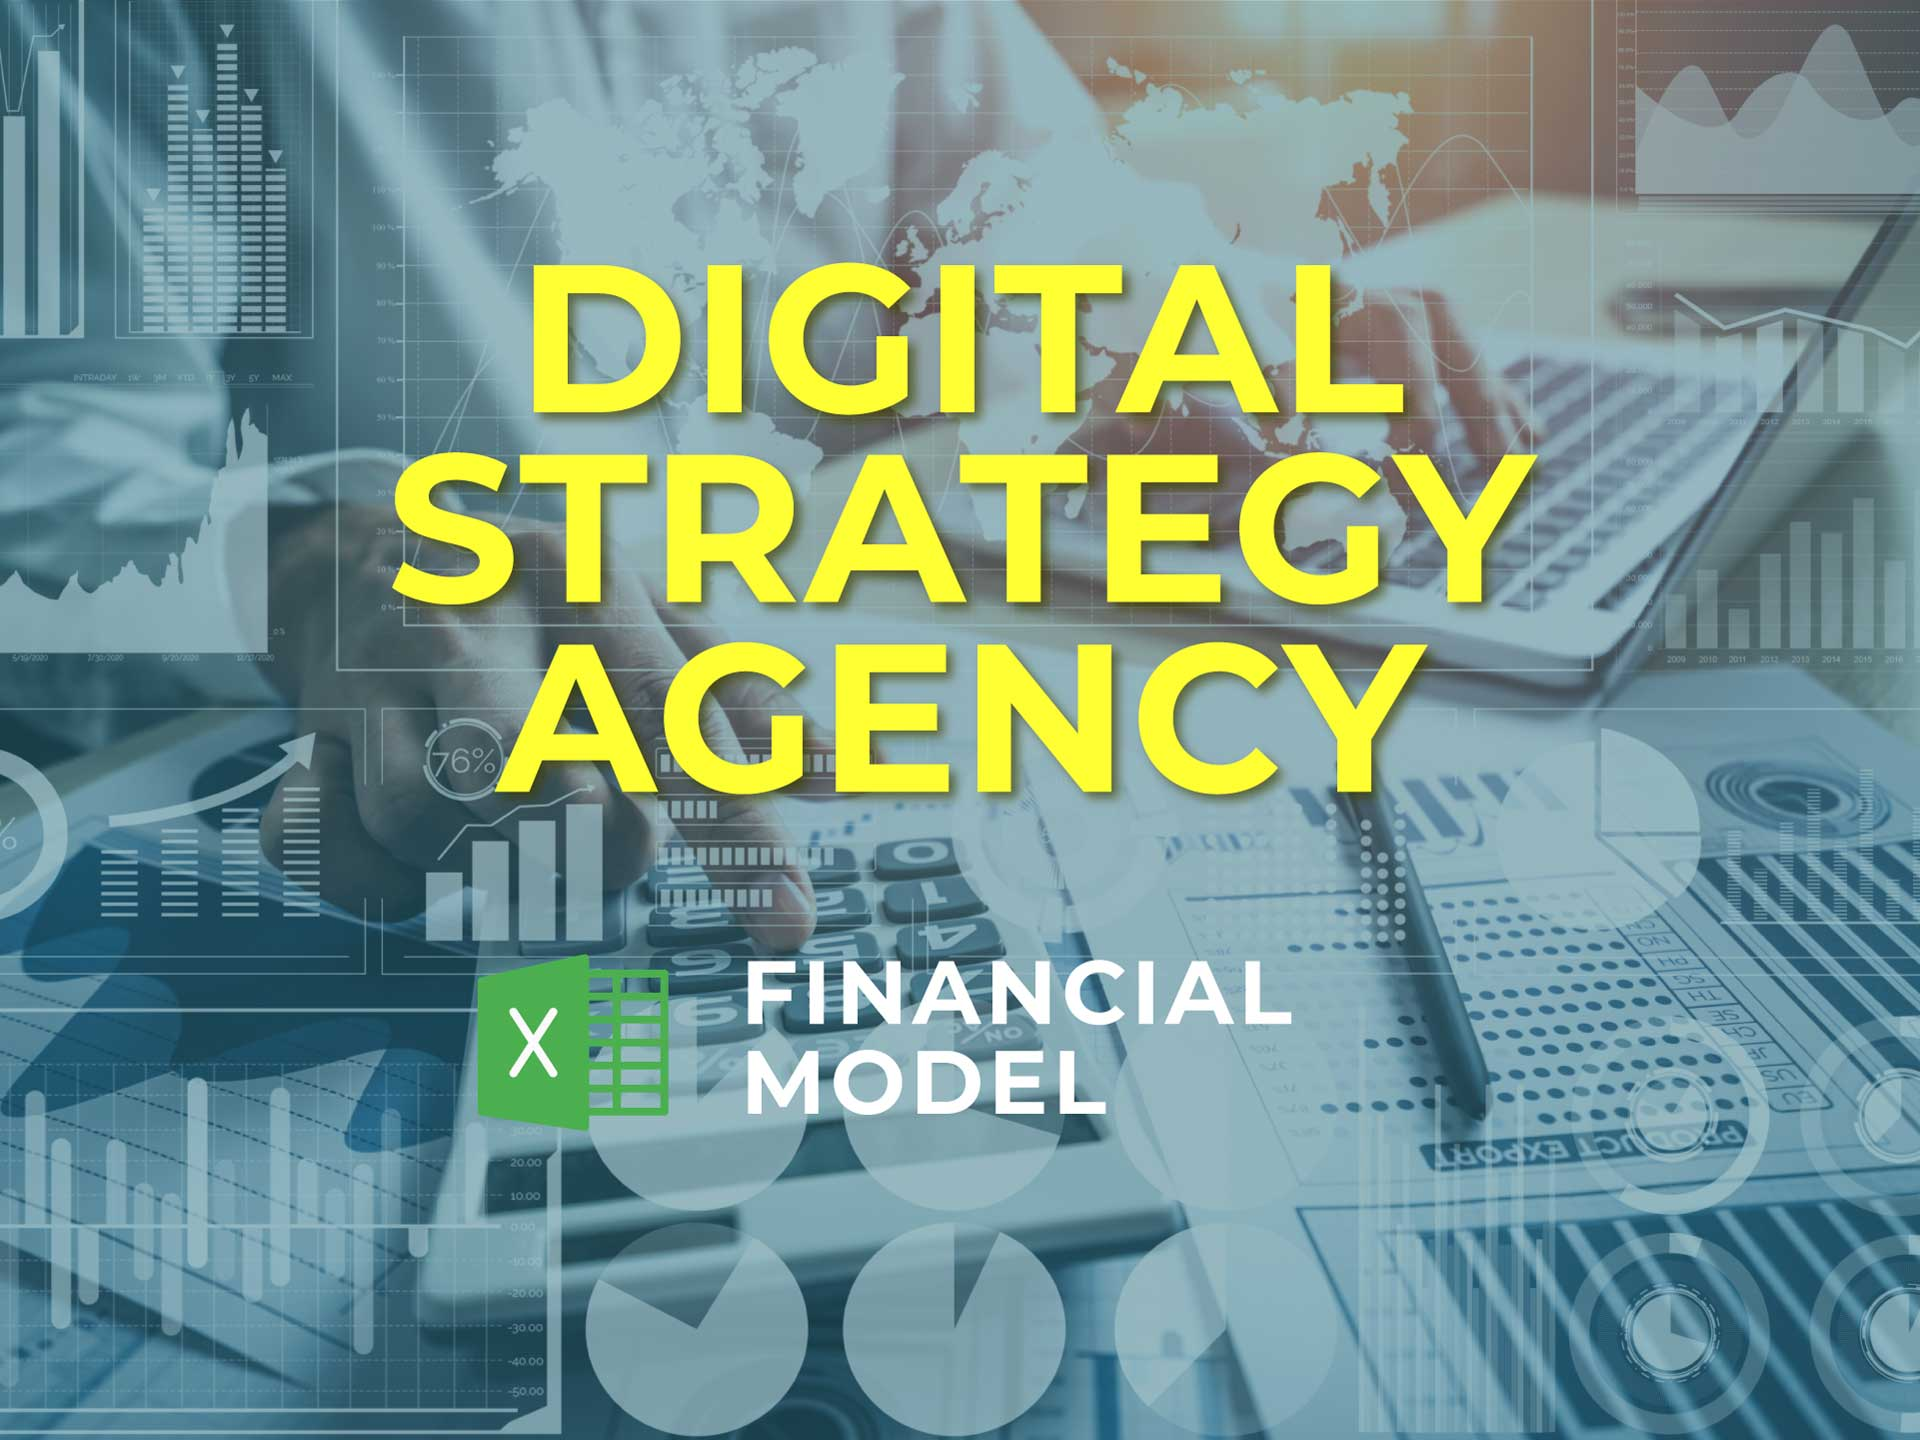 Digital Strategy Agency